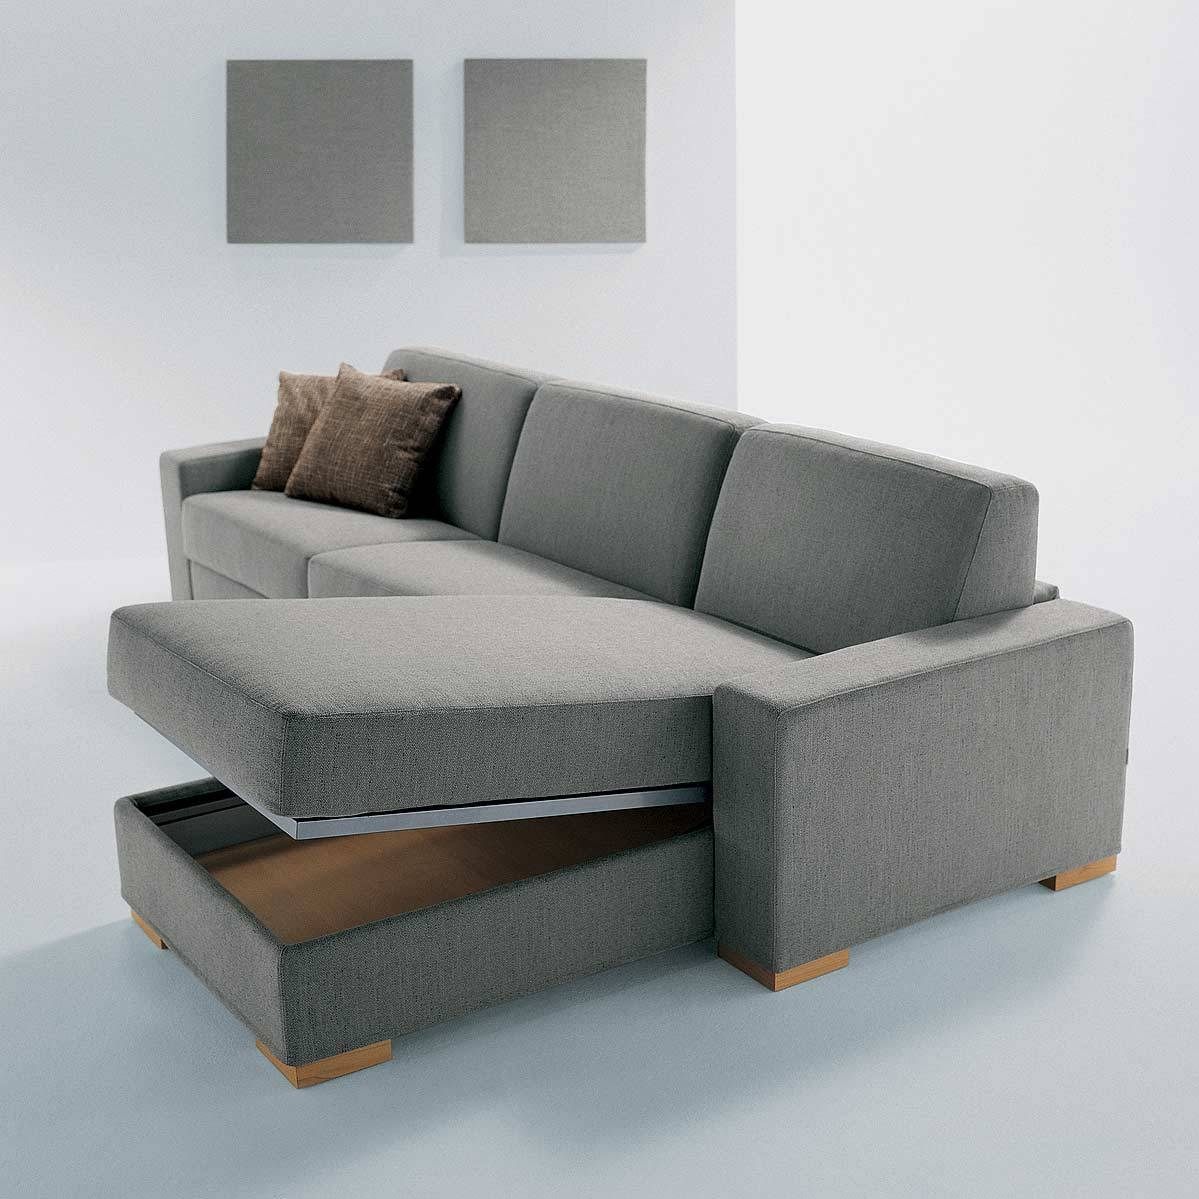 Manstad Sectional Sofa Bed & Storage From Ikea - Cleanupflorida with regard to Ikea Sectional Sofa Bed (Image 12 of 25)